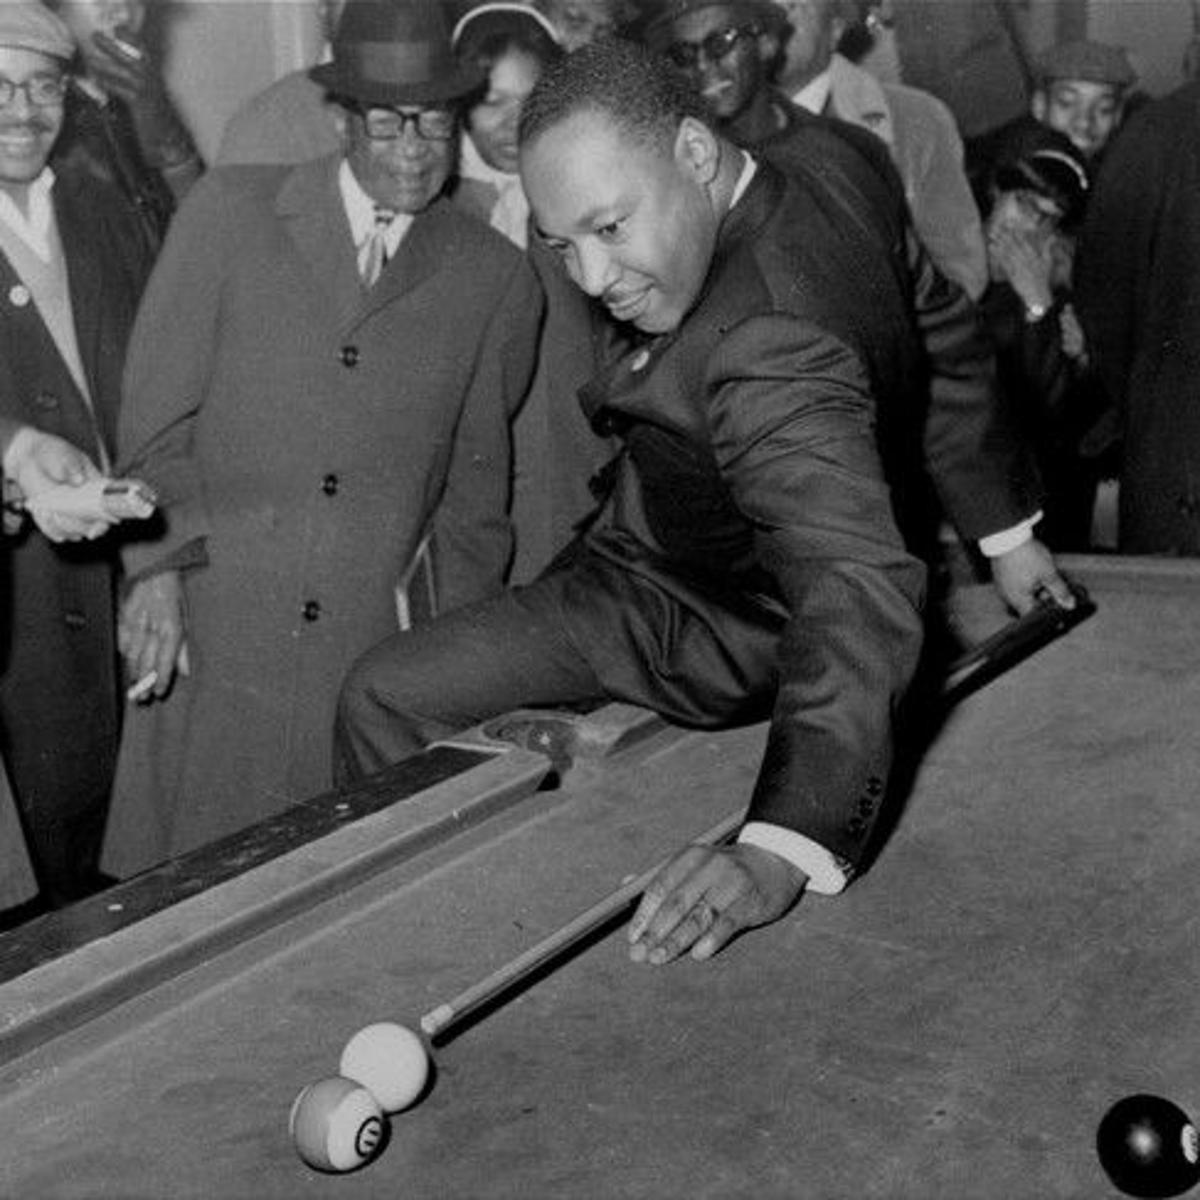 Dr. Martin Luther King, Jr. - Chicago, Illinois U.S.A. - February 18, 1966